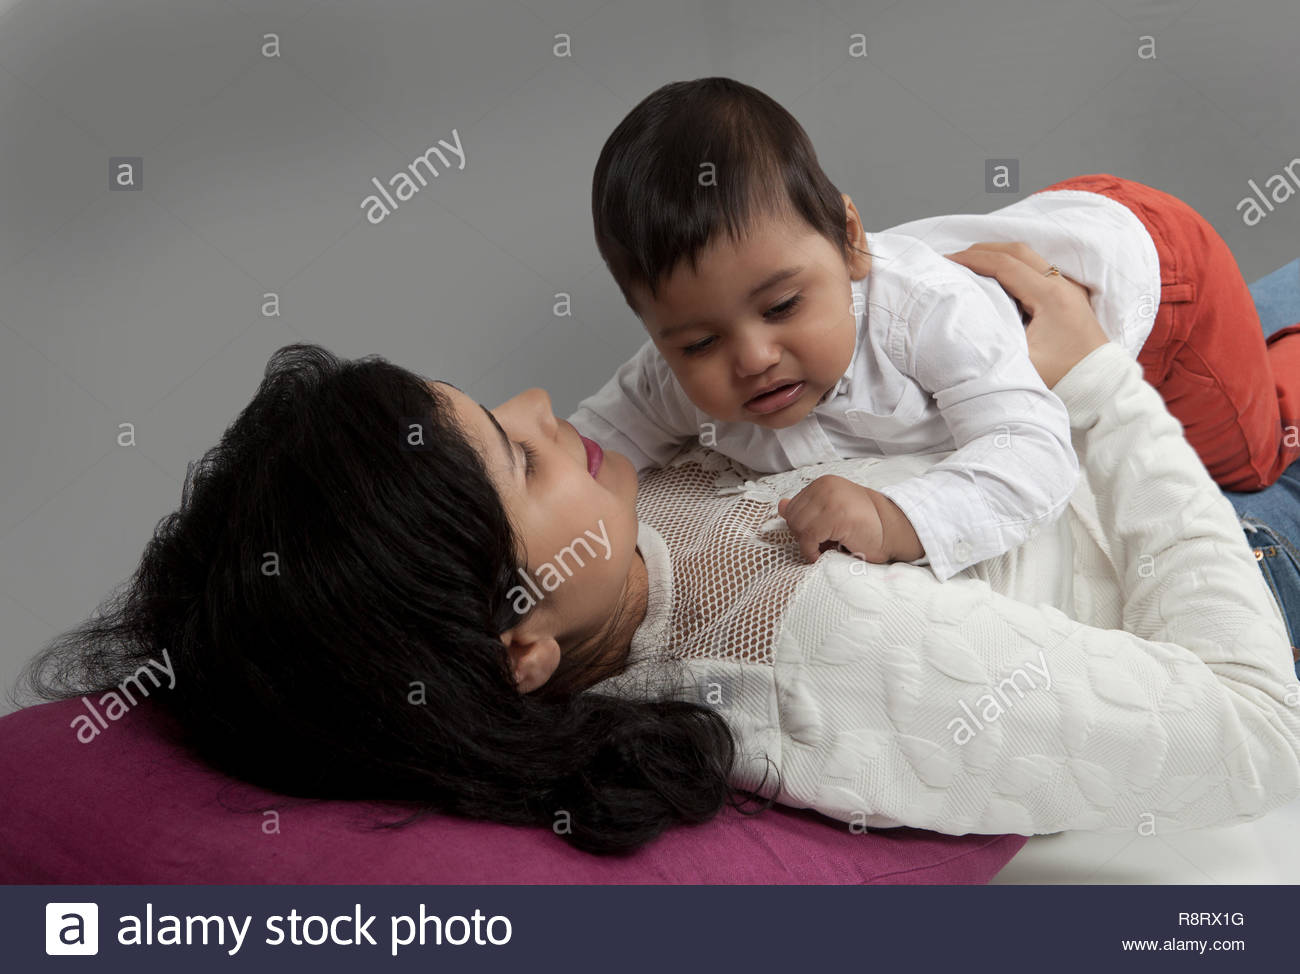 Mother consoling tired or sick baby, trying to make him sleep - Stock Image